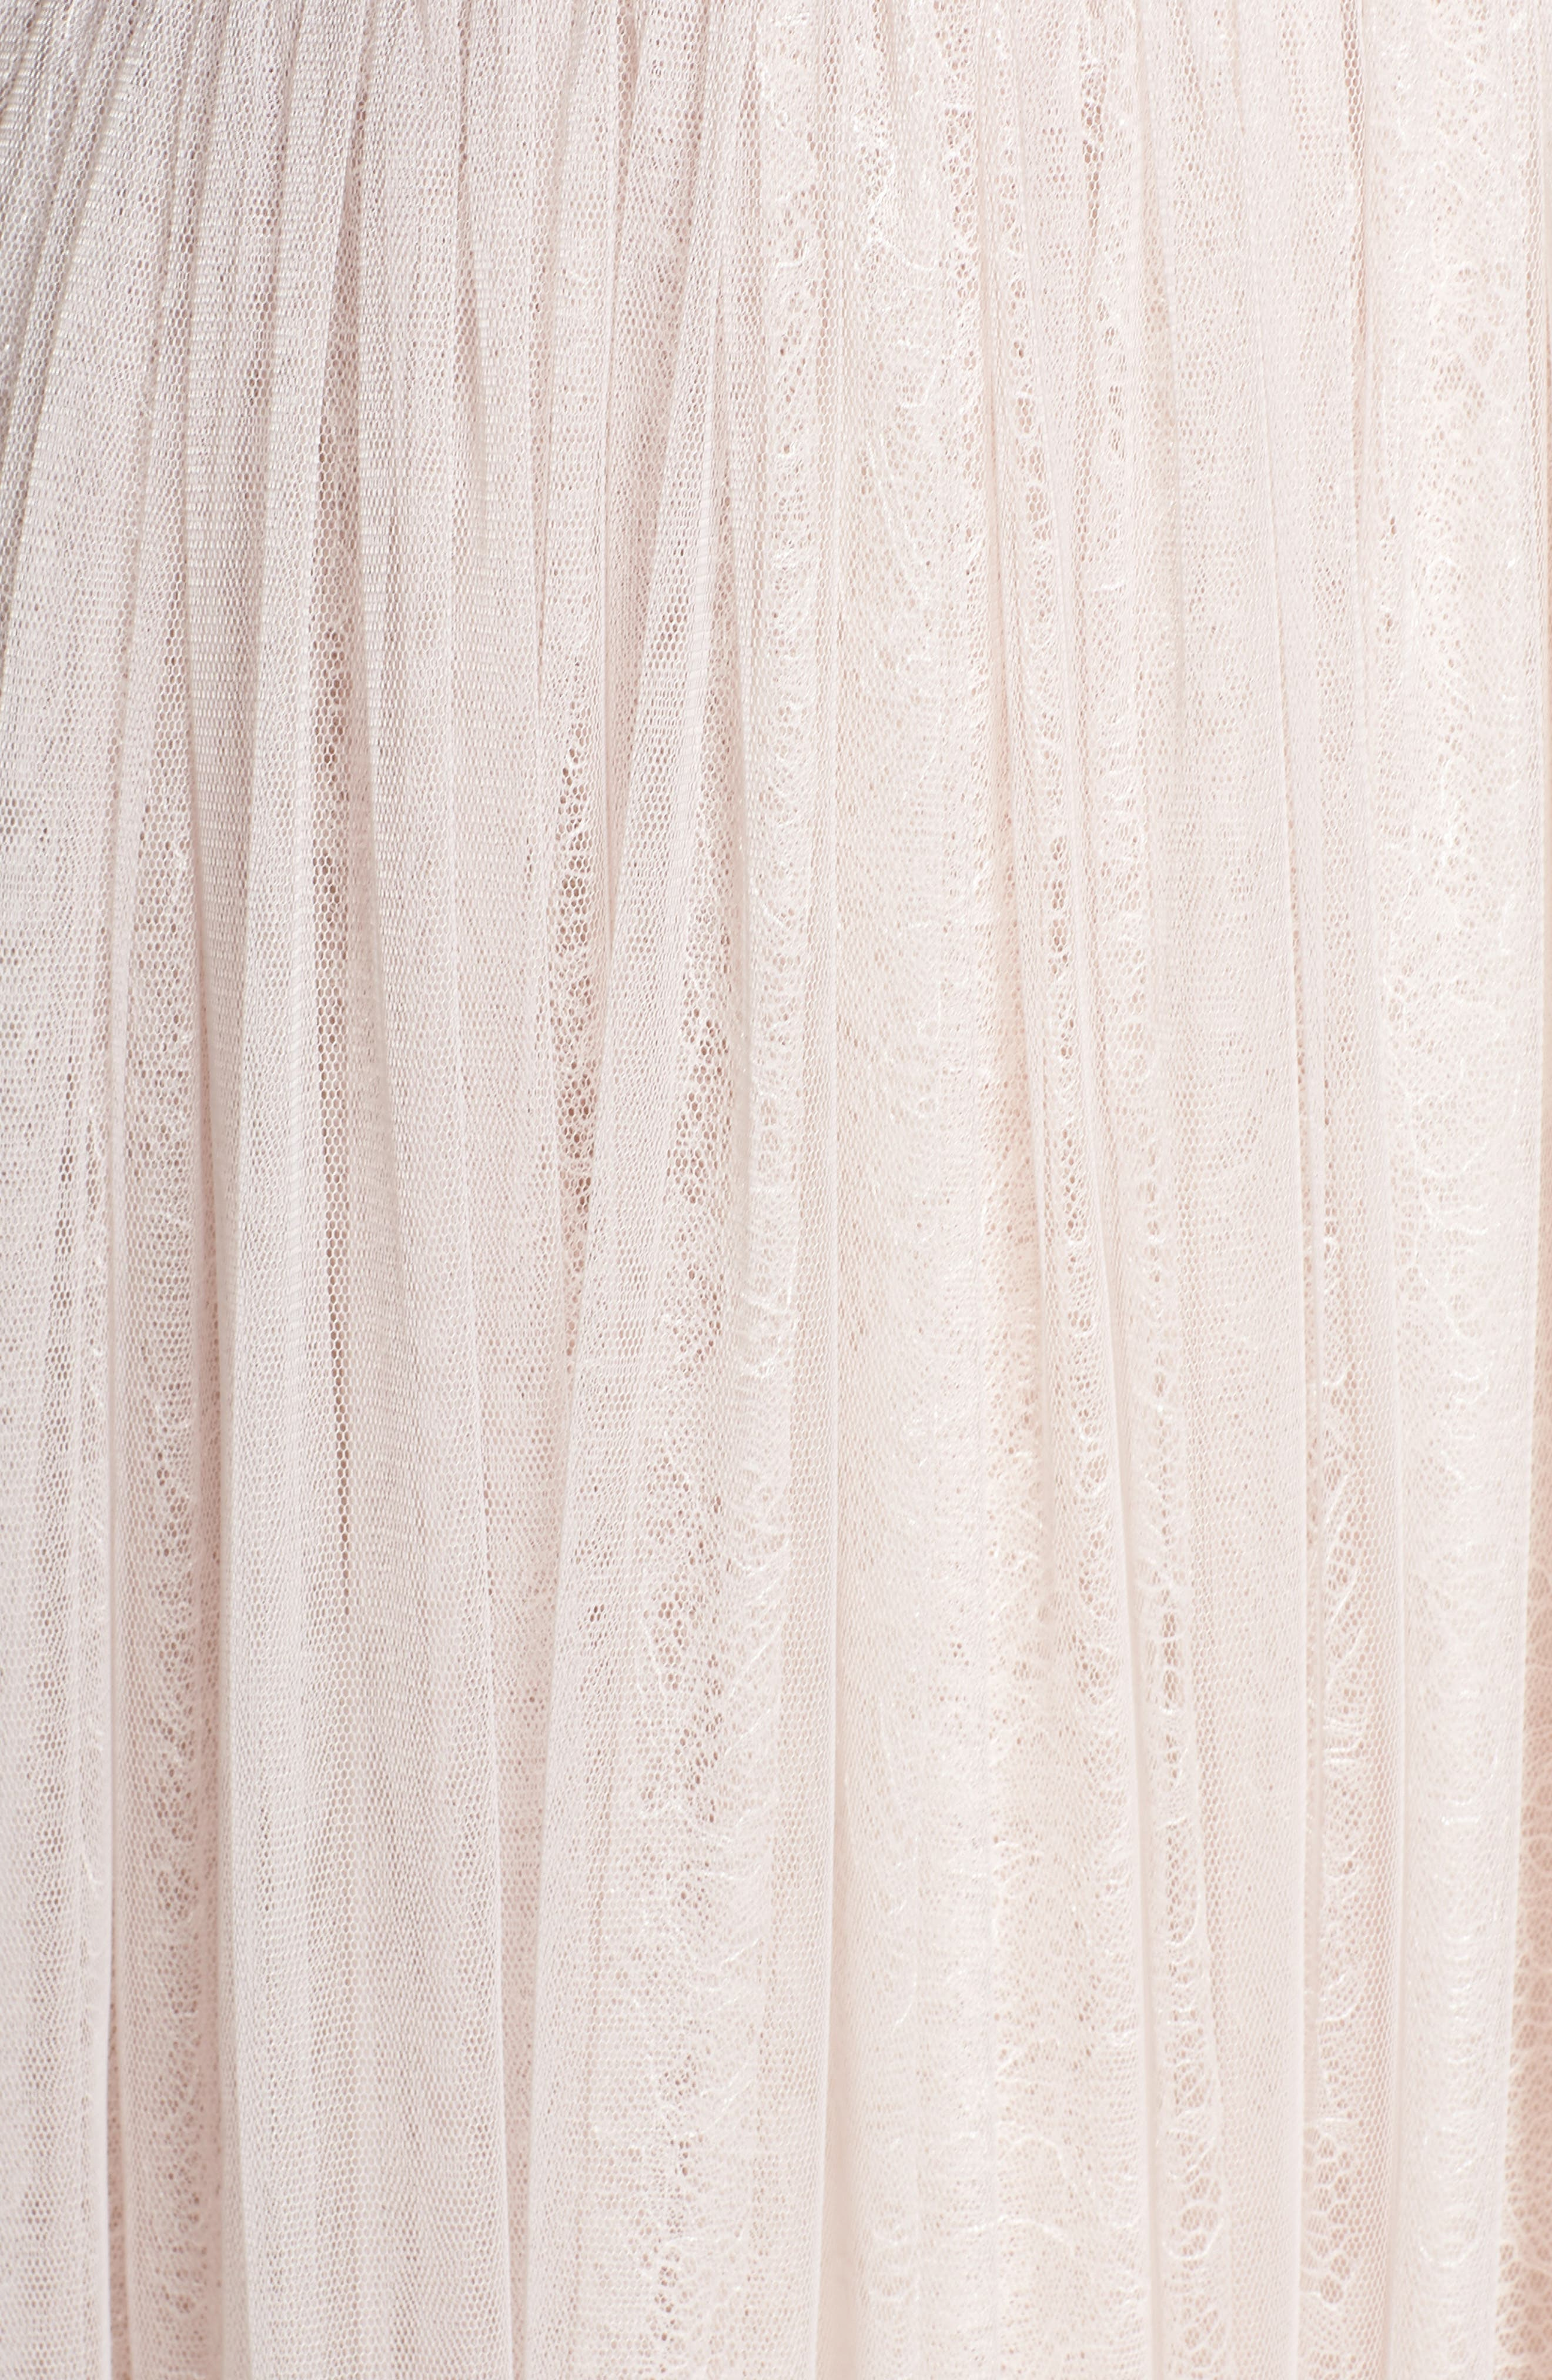 Embellished Bodice Tulle Gown,                             Alternate thumbnail 5, color,                             660